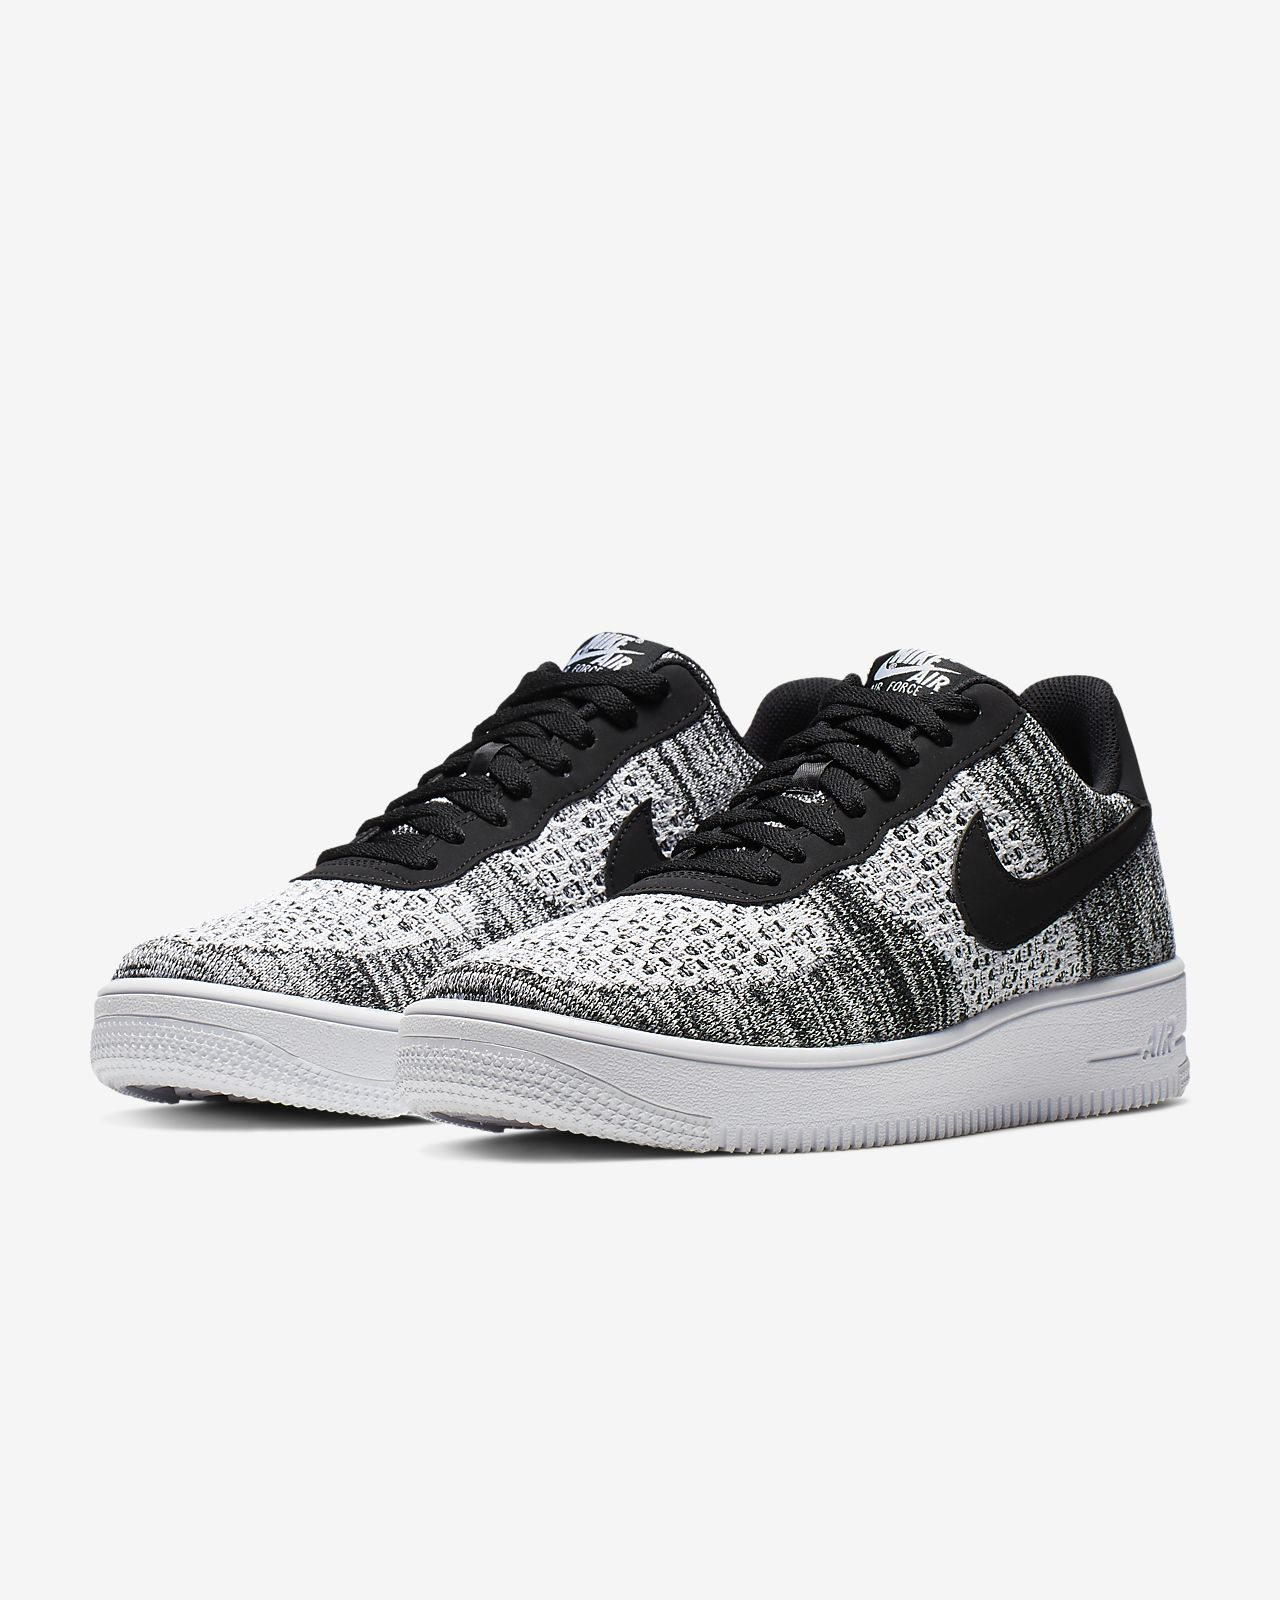 Nike Air Force 1 Flyknit italia